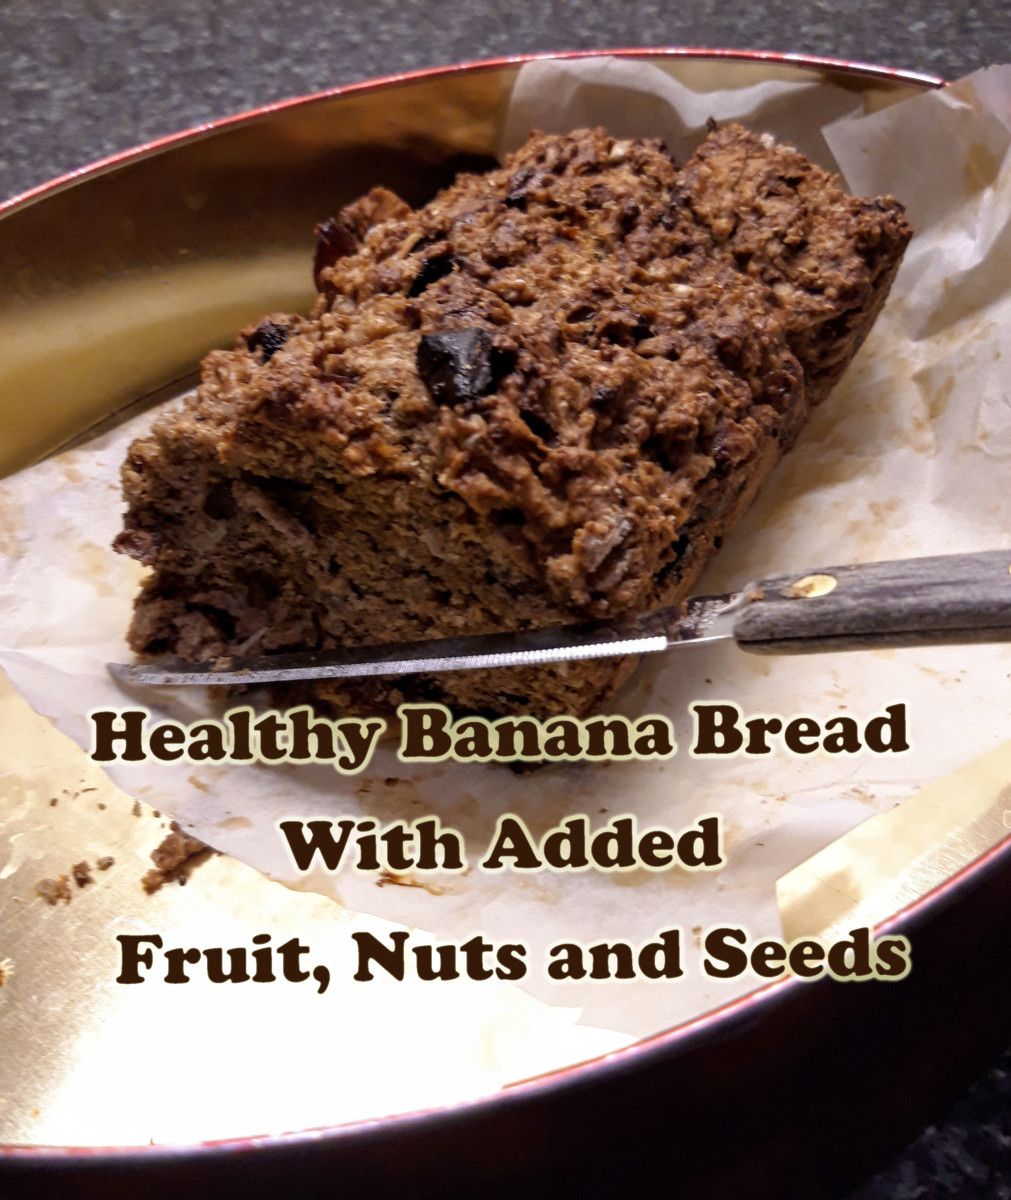 Healthy Banana Bread With Fruit, Nuts and Seeds (Diabetic Friendly)